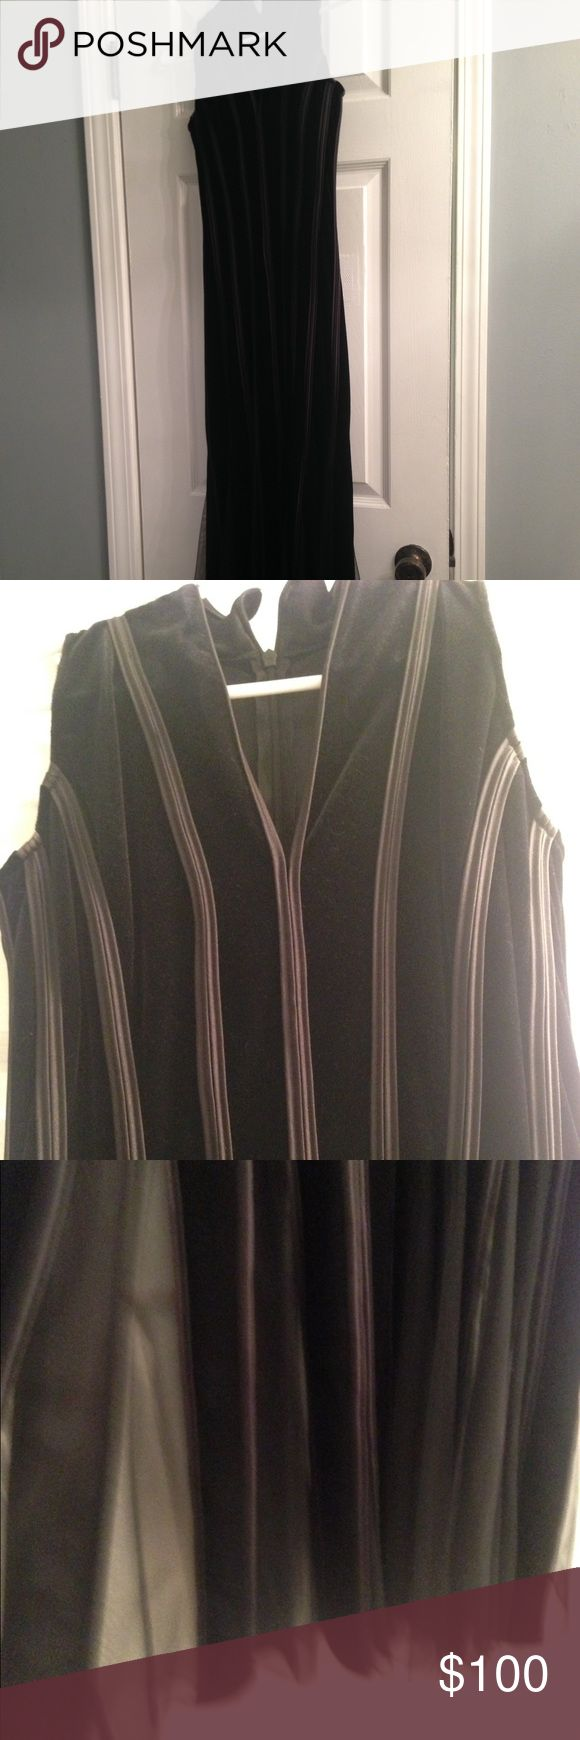 Beautiful sleek black ribbed event dress This dress is HOT! I wore it once to a ball when I was a size 4. It is black velvet with a black ribbing and hits the floor almost on me. I am 5'4. Make an offer! Night Way Dresses Maxi